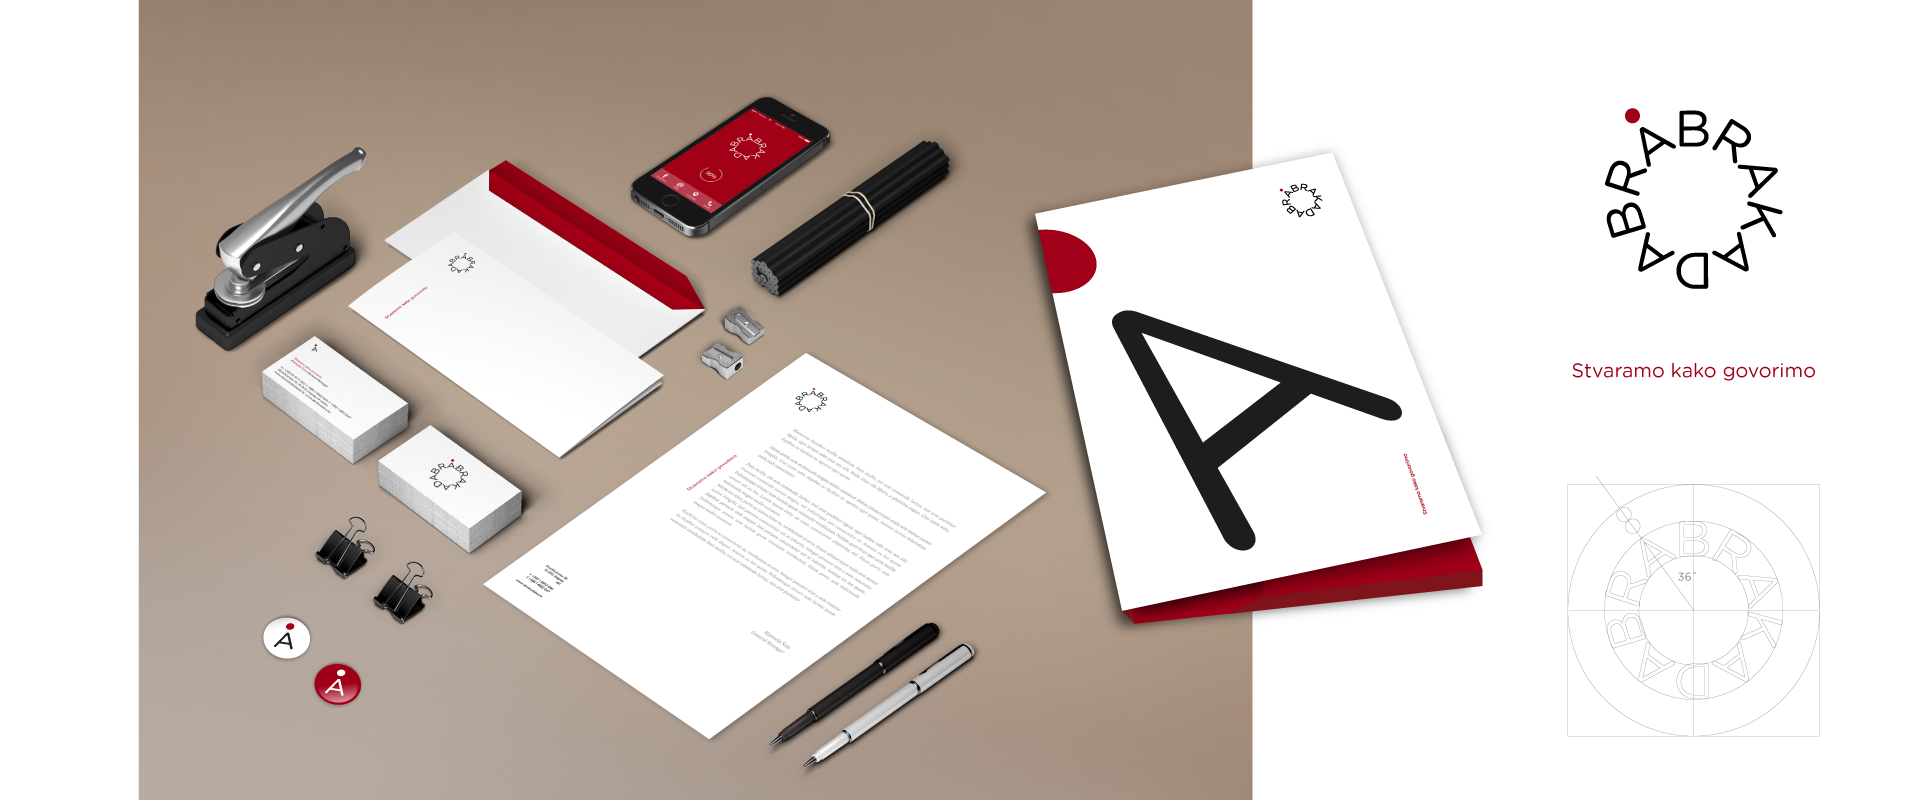 Abrakadabra logo and stationary